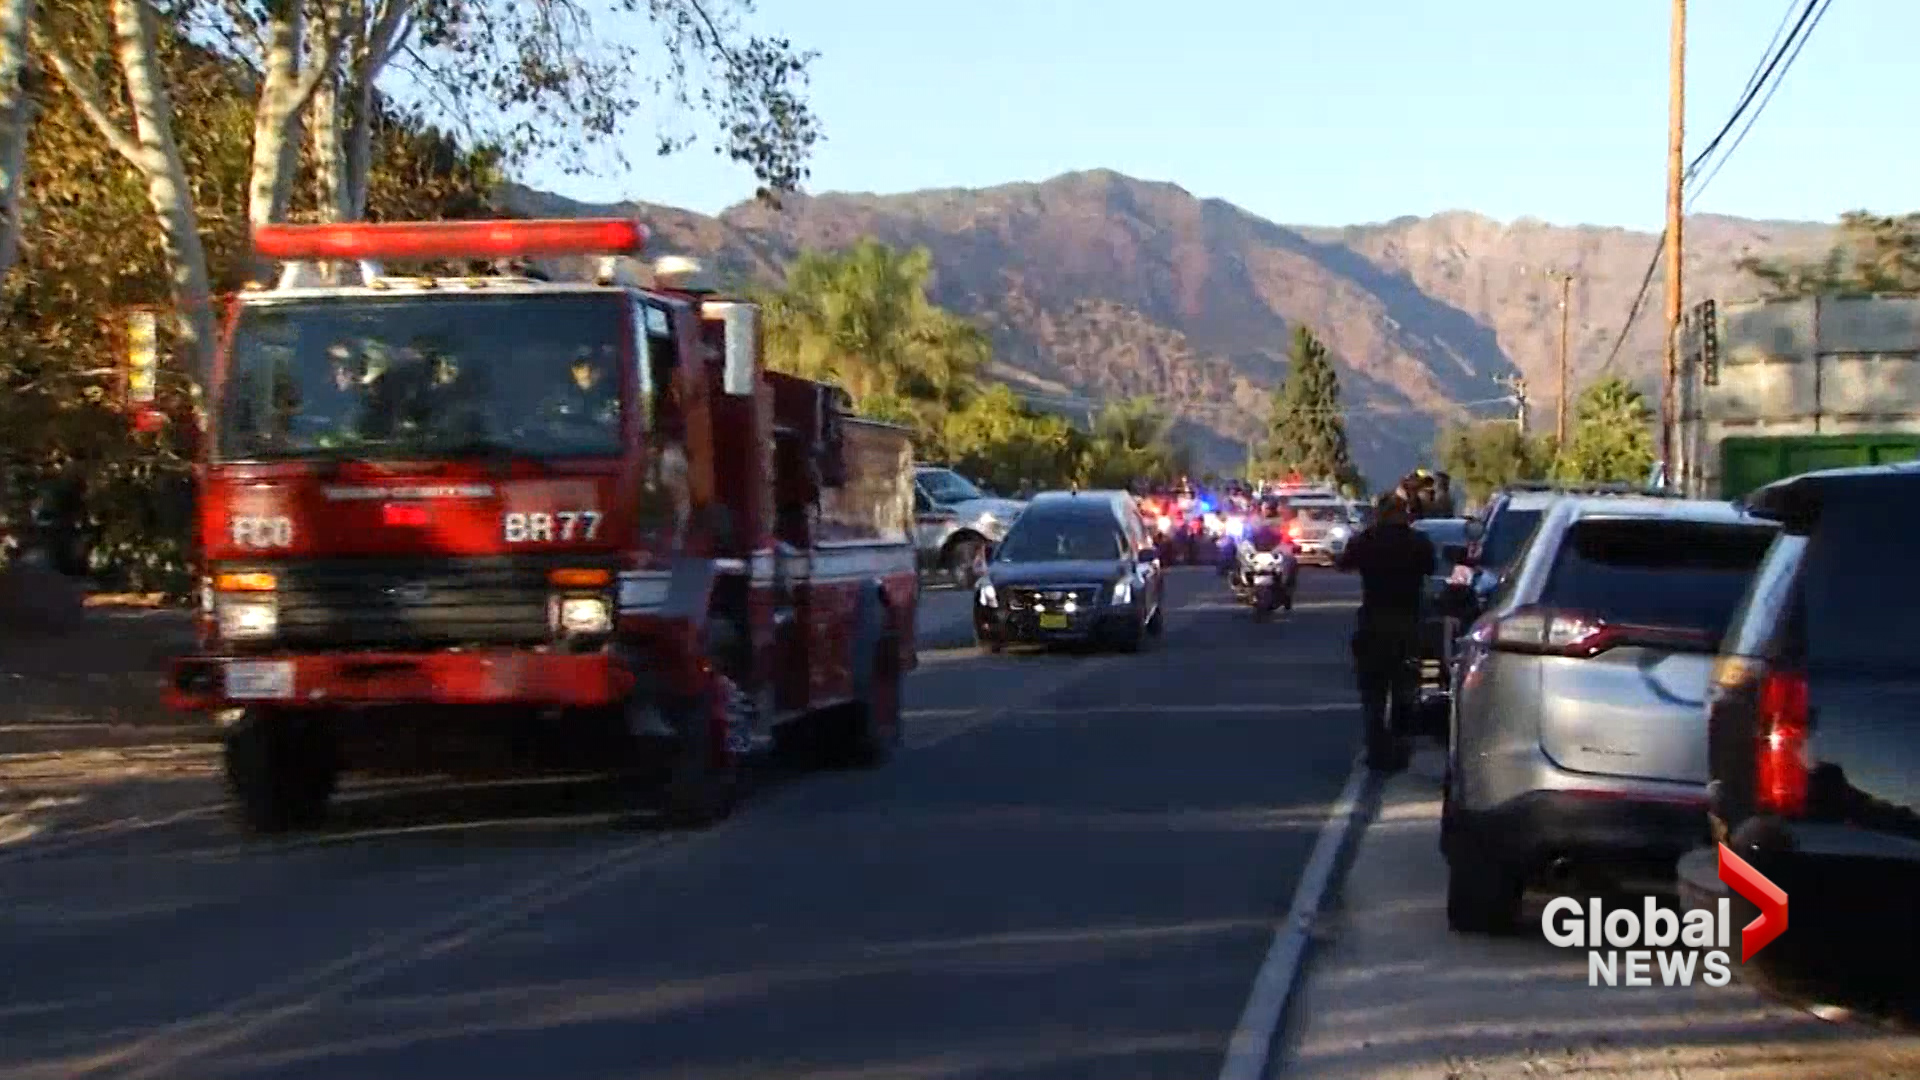 Cal Fire San Diego firefighter Cory Iverson dies battling Thomas Fire